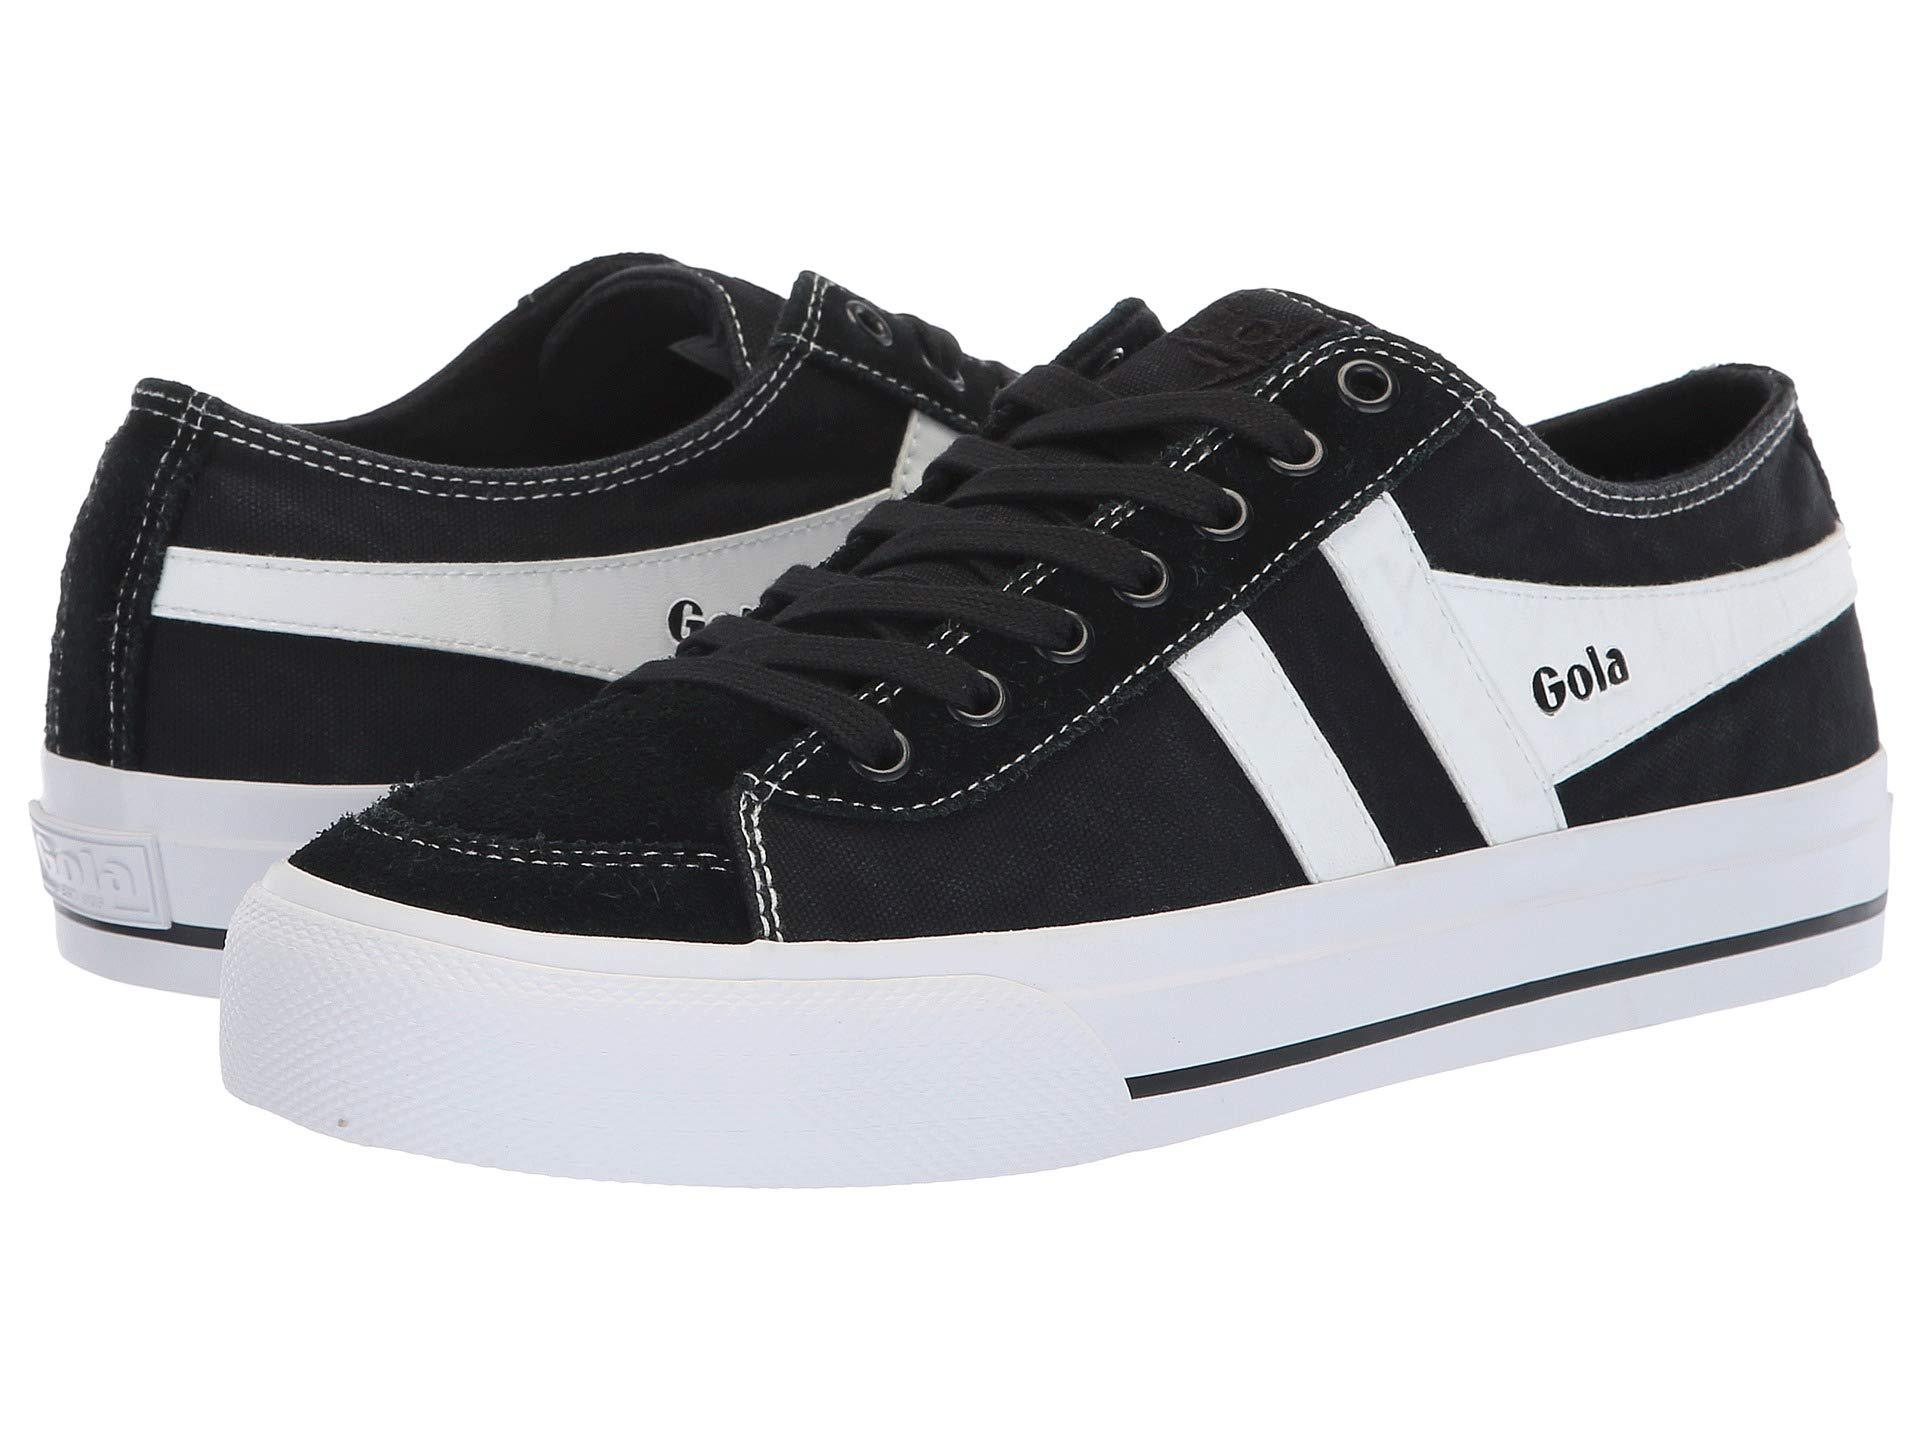 a30e030eef7bd Lyst - Gola Quota Ii (navy/white) Women's Shoes in Black - Save 1%